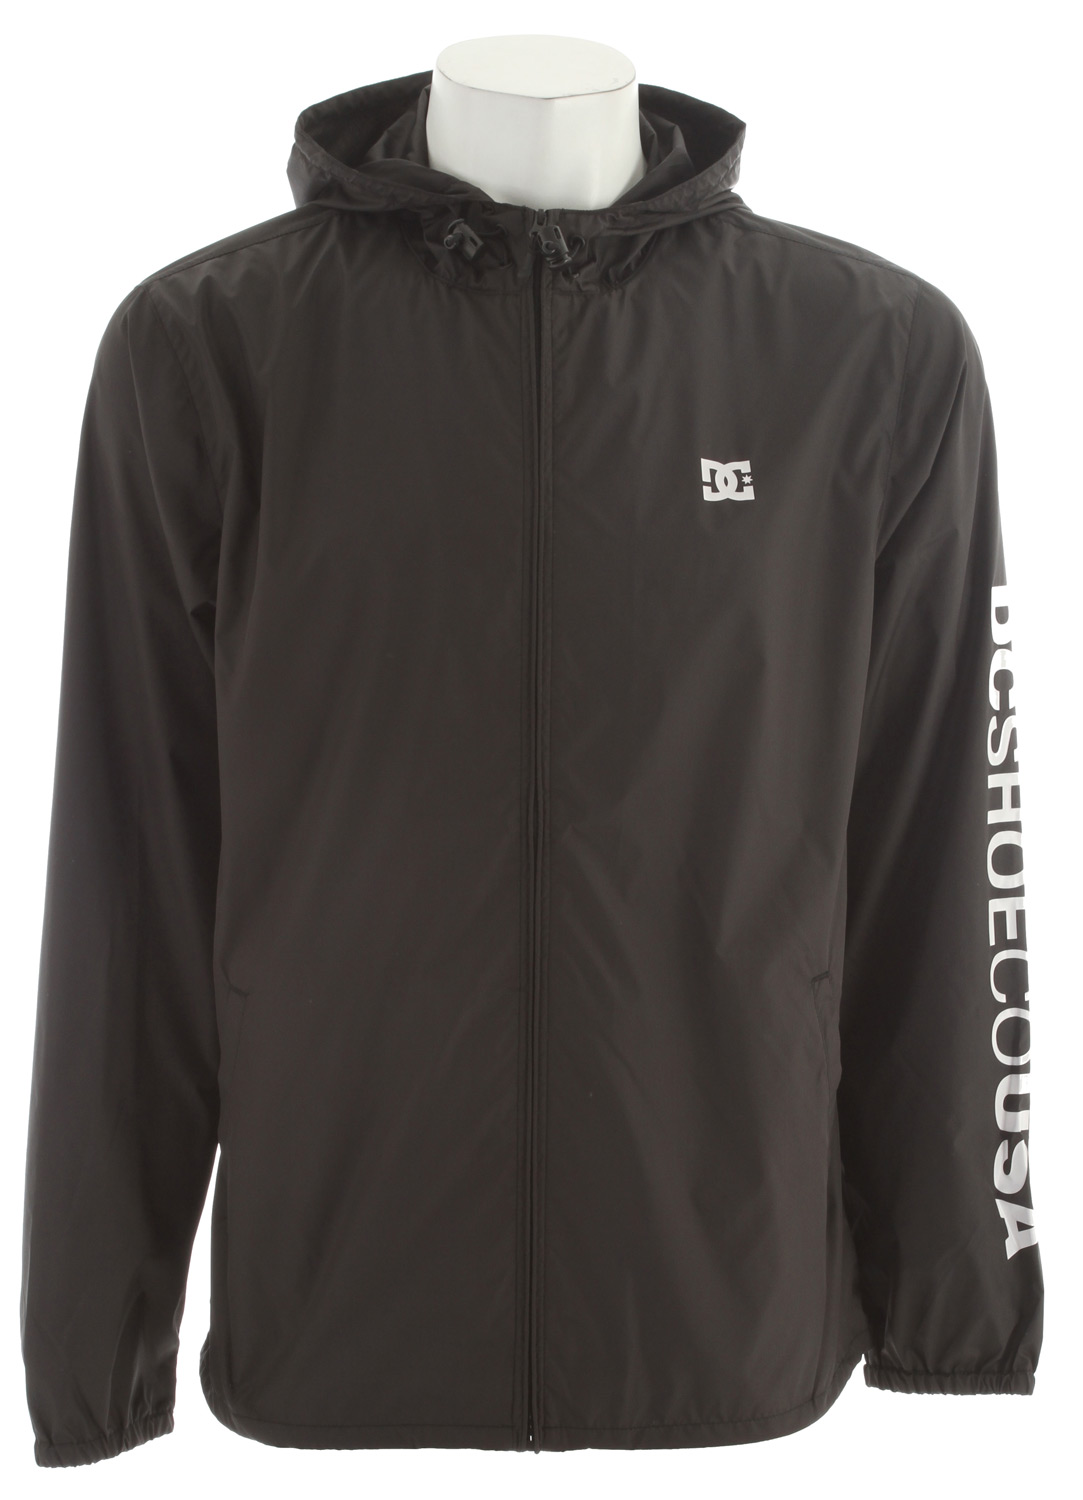 Soft shell jacket 100% polyesterKey Features of the DC Cambria Softshell Jacket: Soft shell poly one color screen print at chest and sleeve custom logo trim package 1000 mm coating 100% Polyester - $38.95